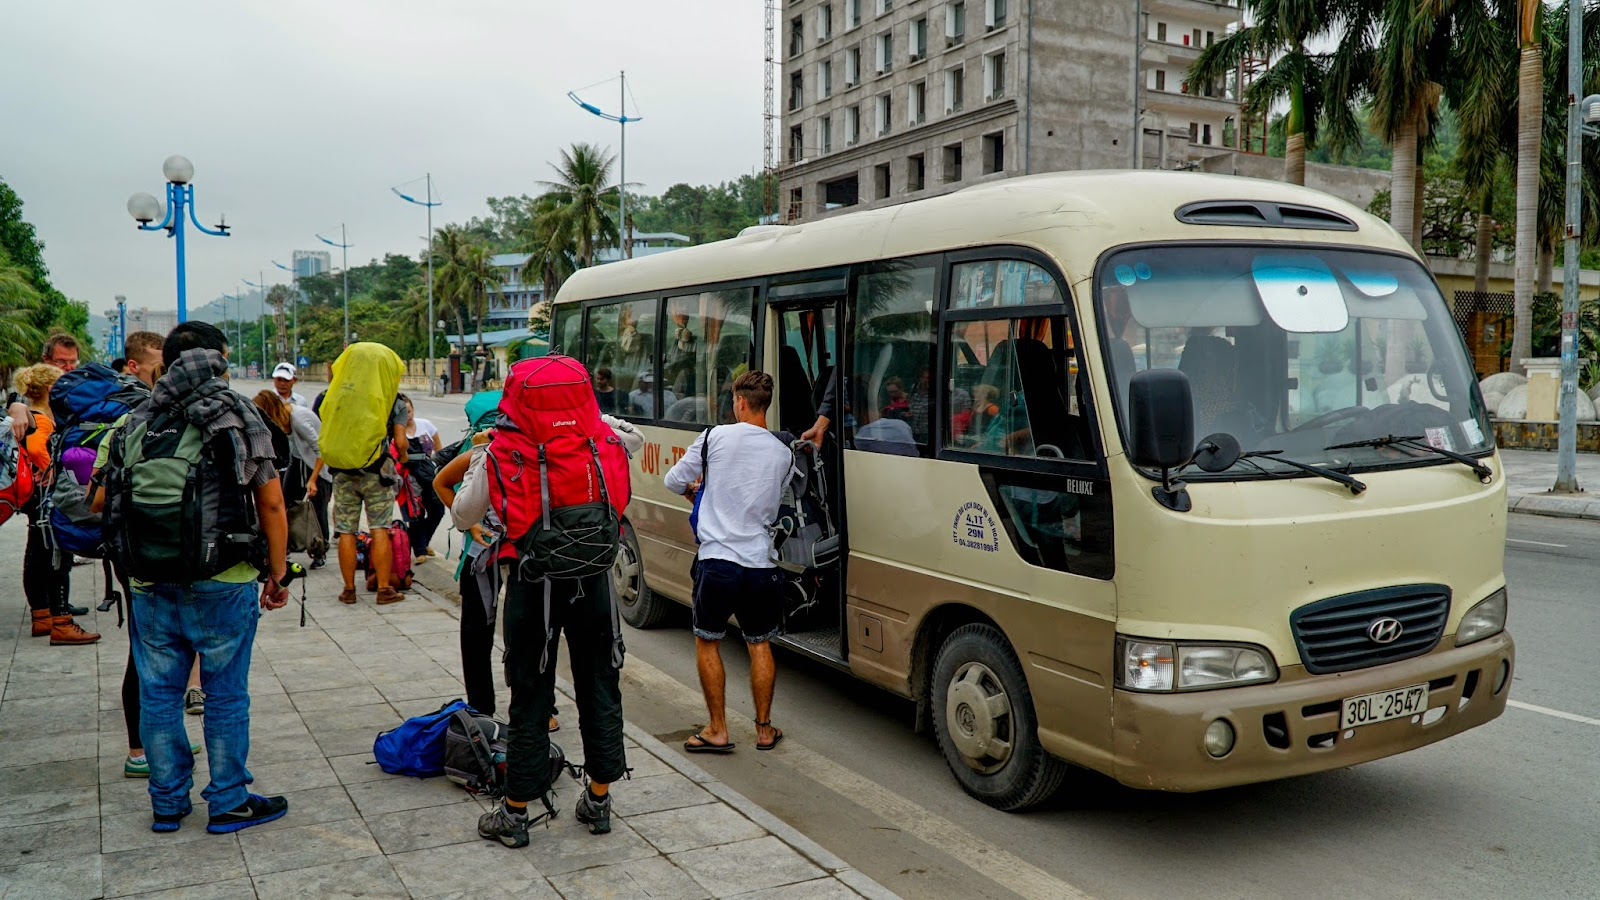 Our transport to Halong dropped us off near Bai Chay tourist wharf